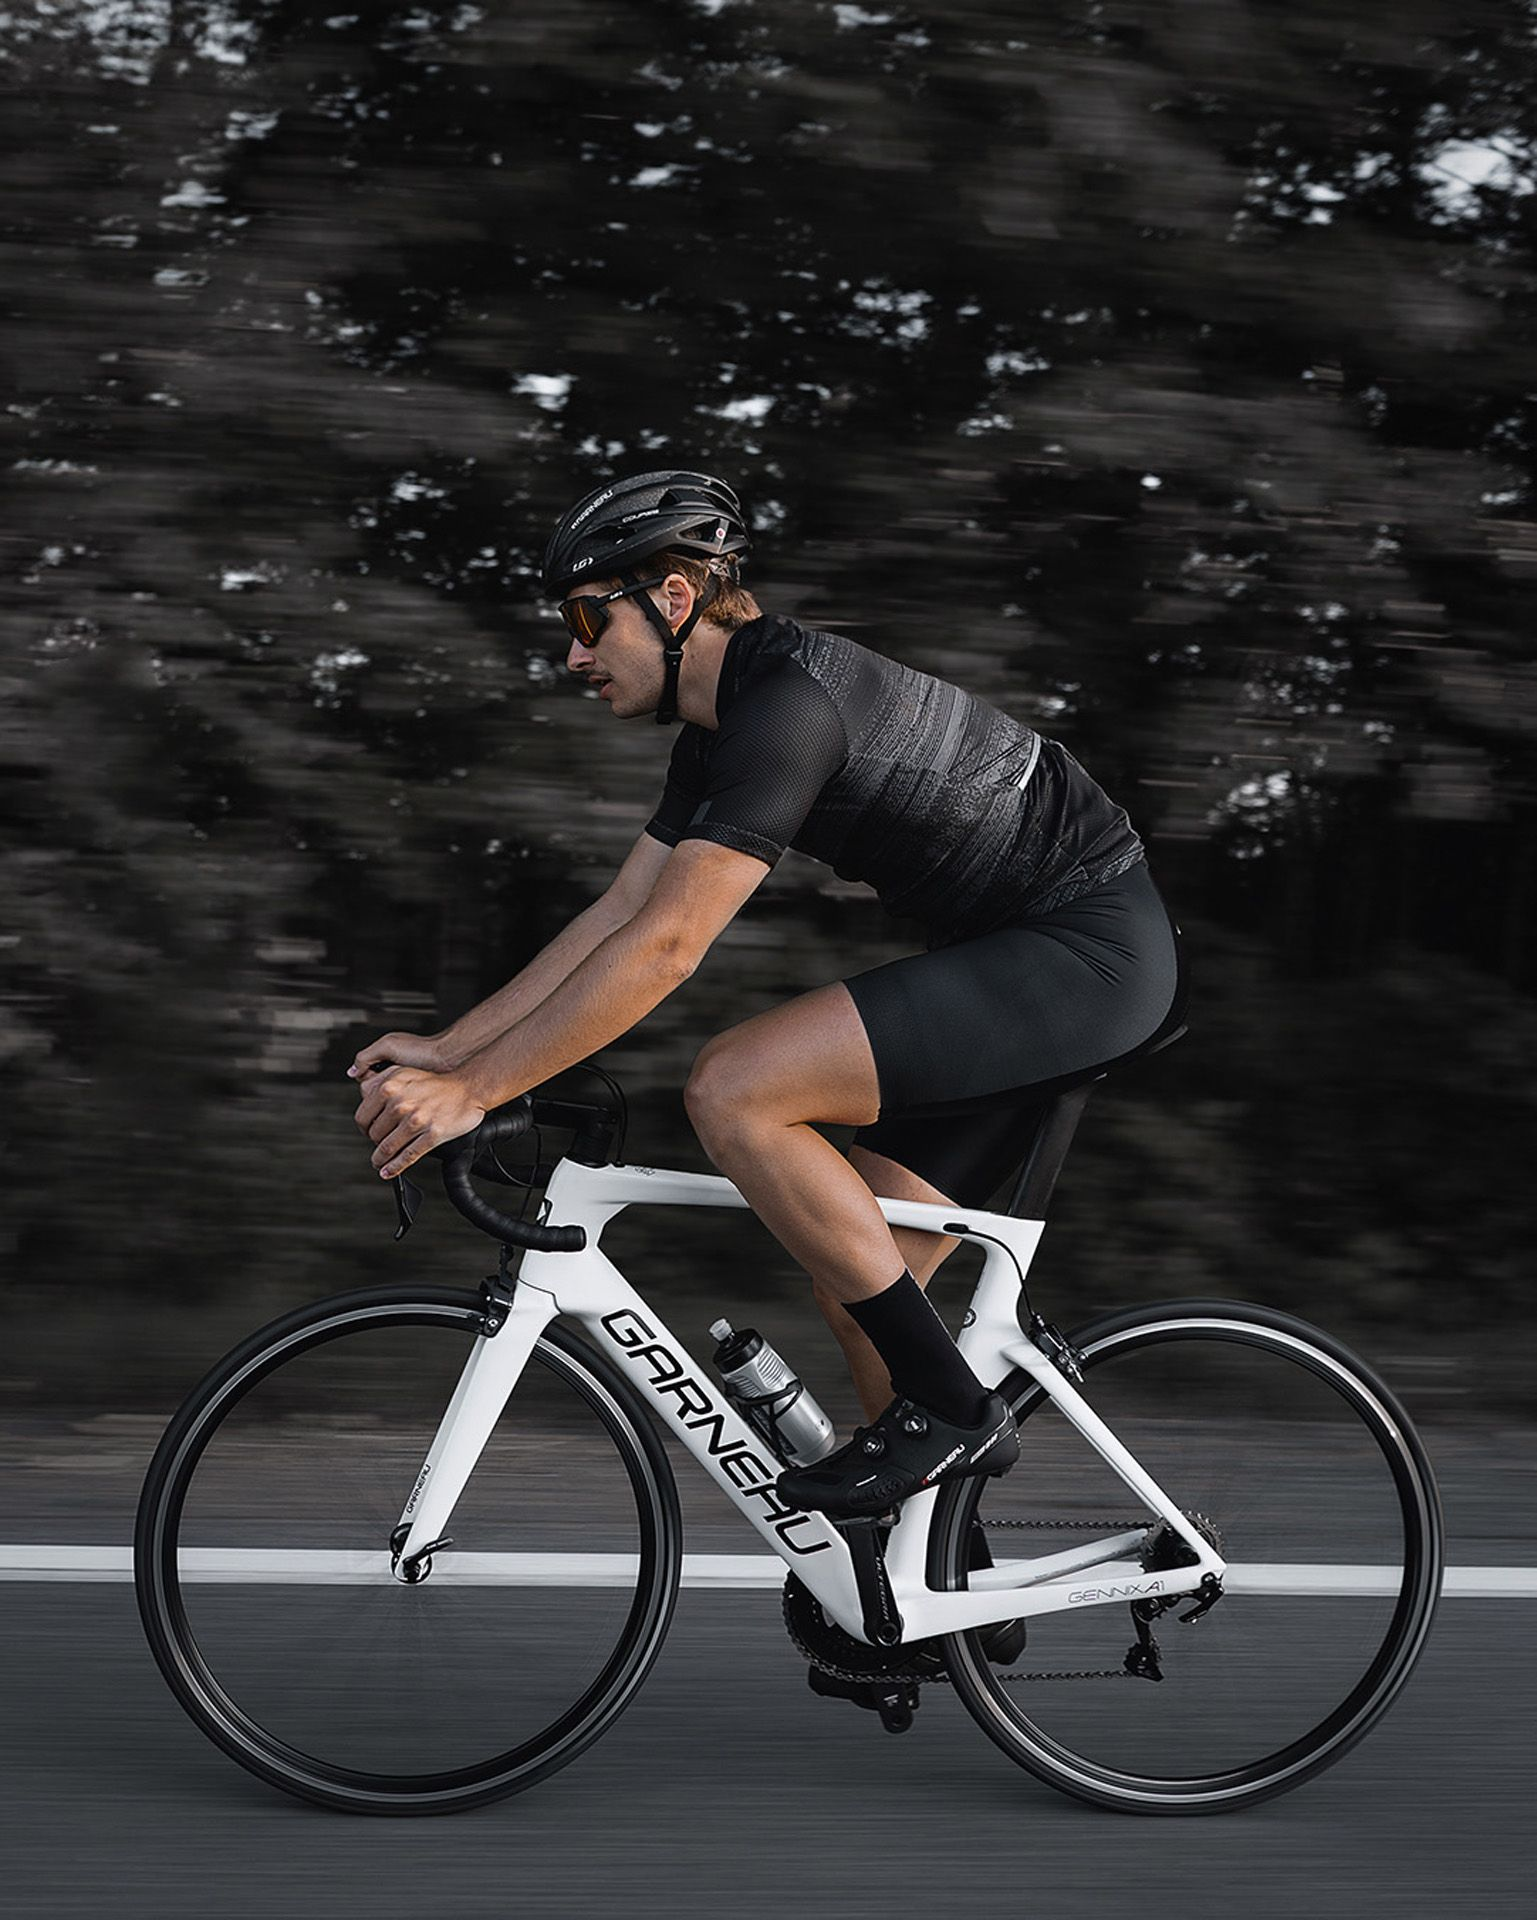 male model wearing black bike helmet and black biking bodysuit with sunglasses biking fast on road on a white sports bike for Spring Summer 2020 campaign of Louis Garneau with artistic direction and styling by Studio TB